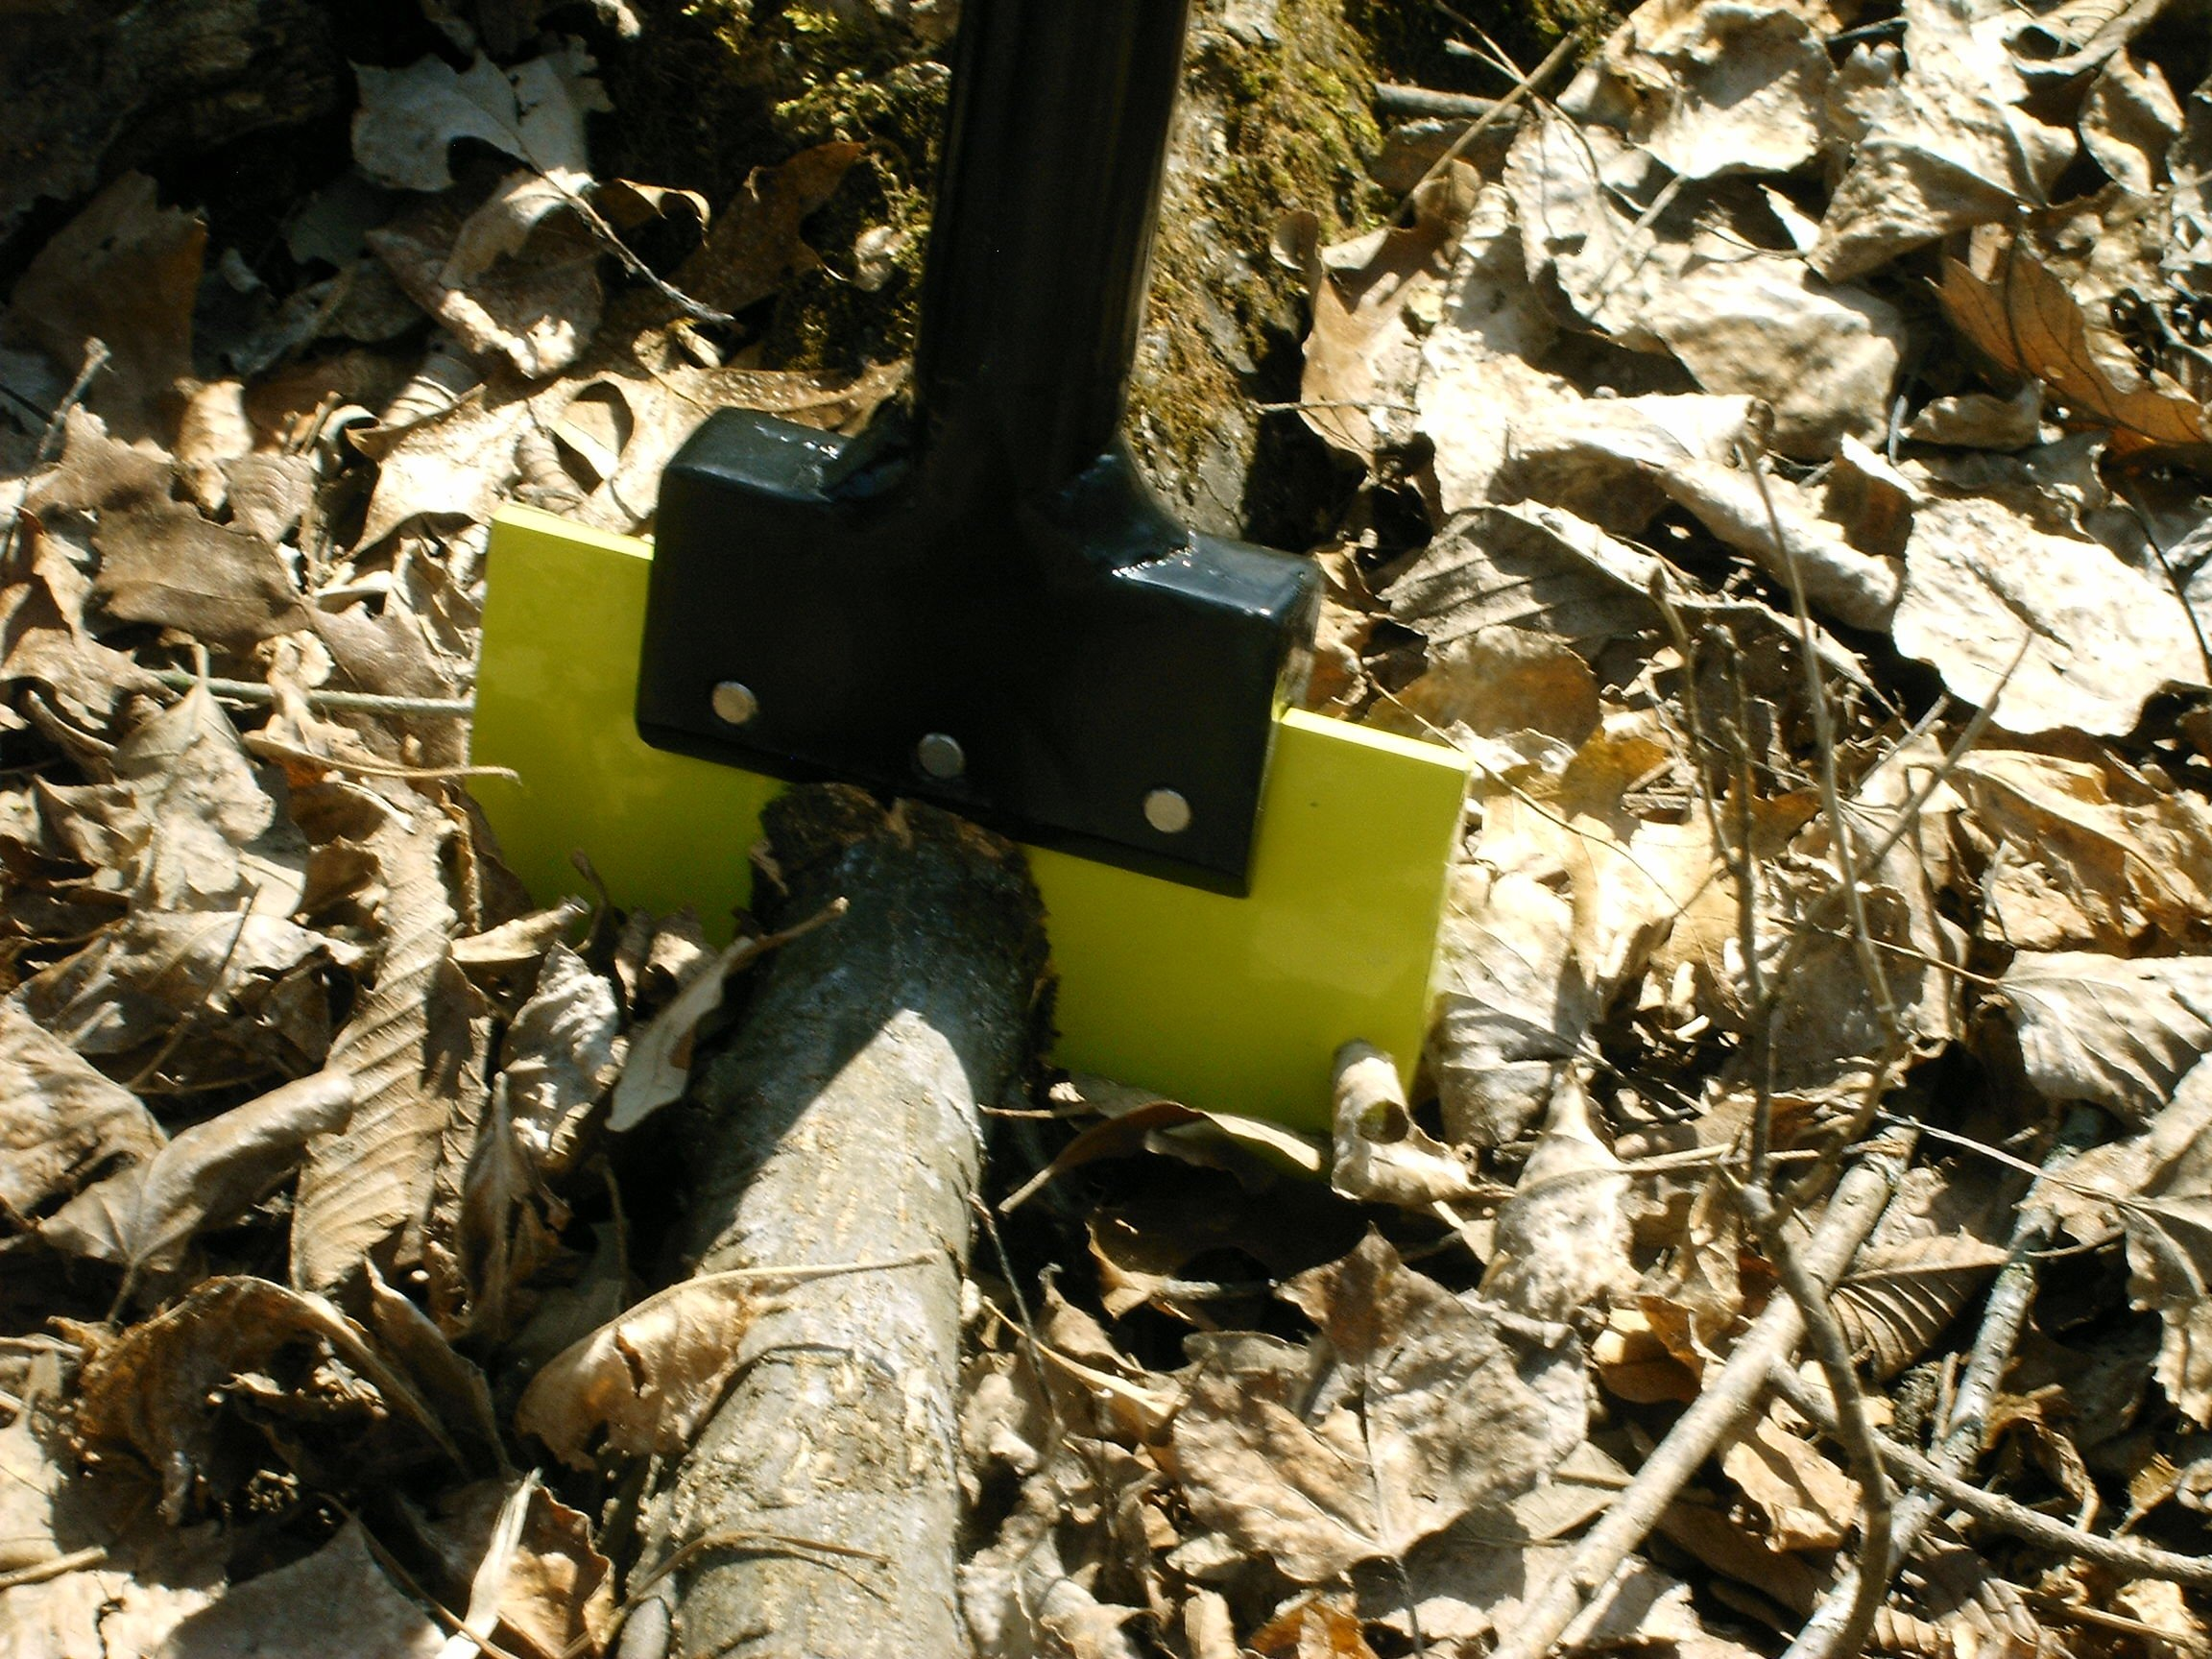 Brush Grubber BG-18 Heavy Duty Root Buster by Brush Grubber (Image #2)